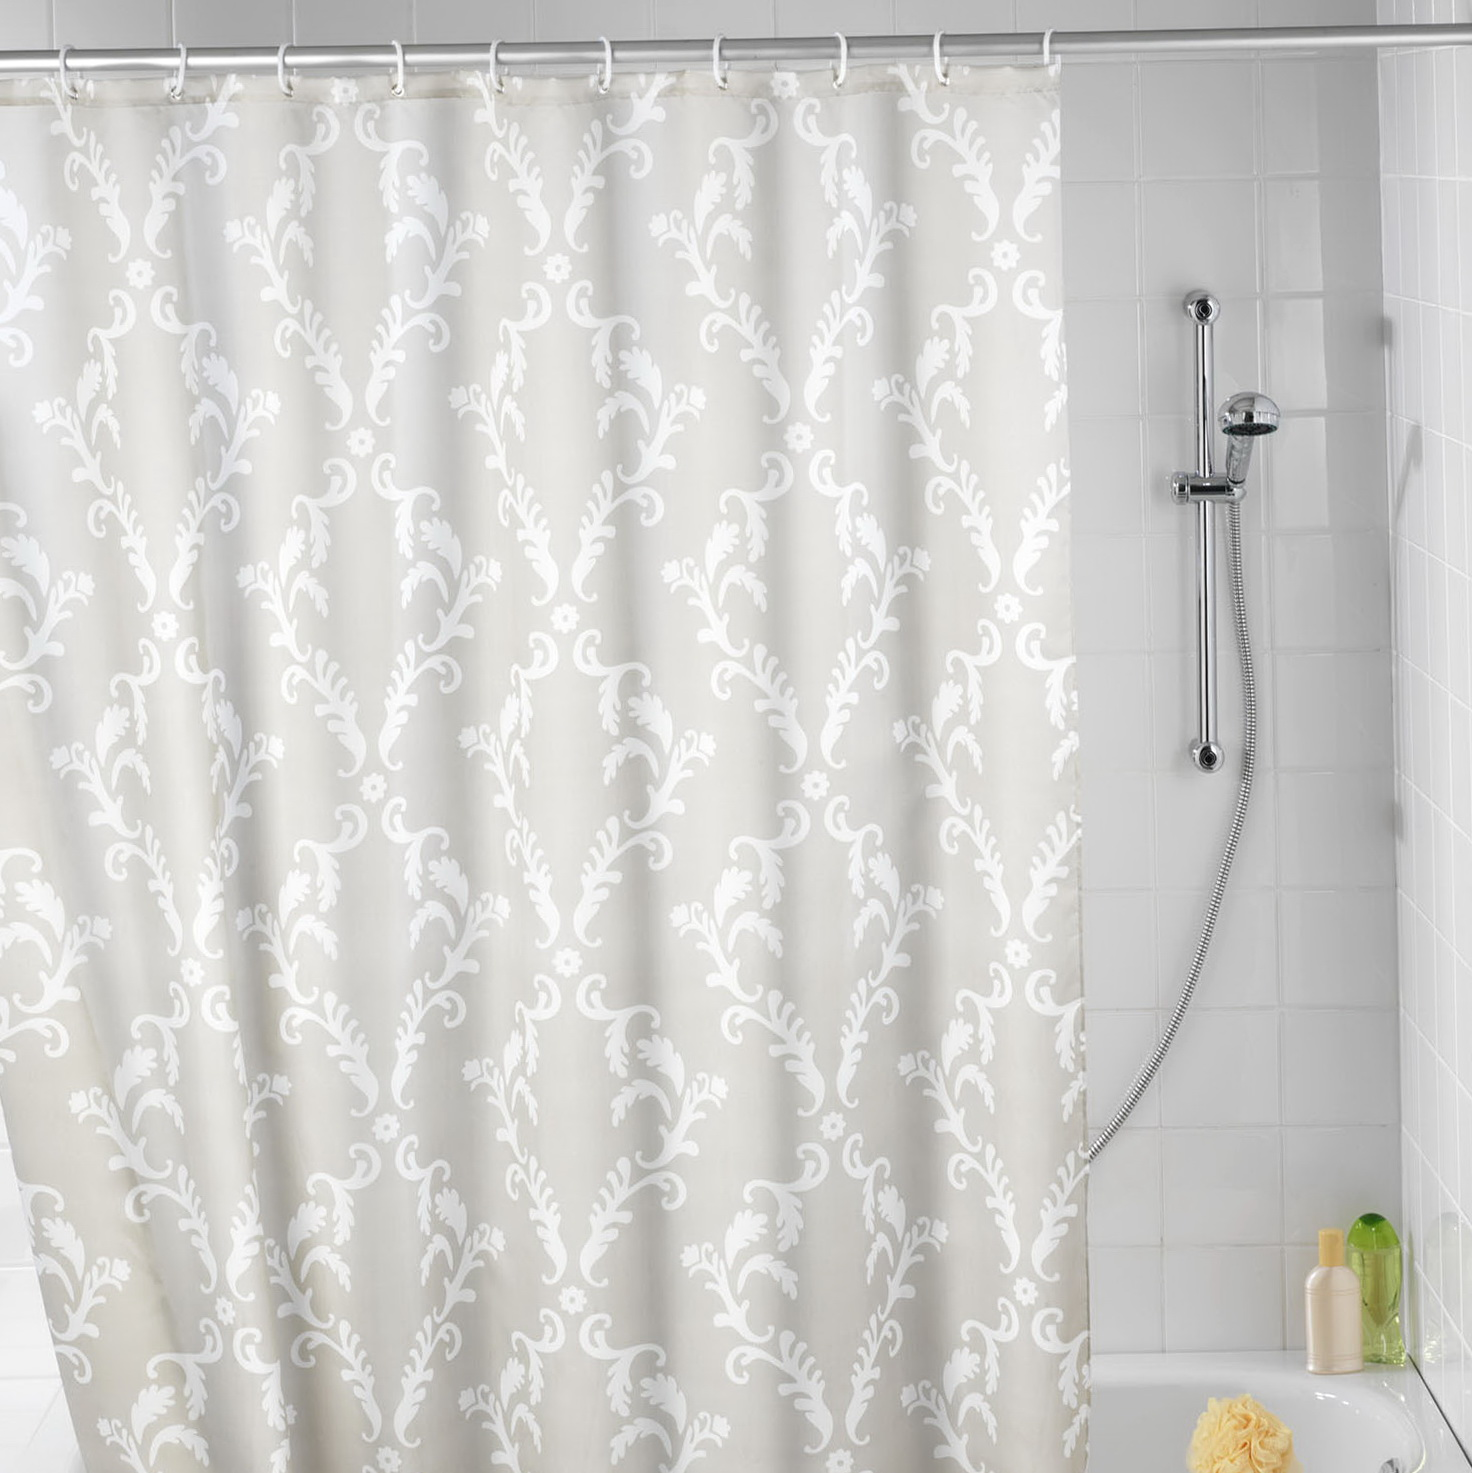 See through shower curtain